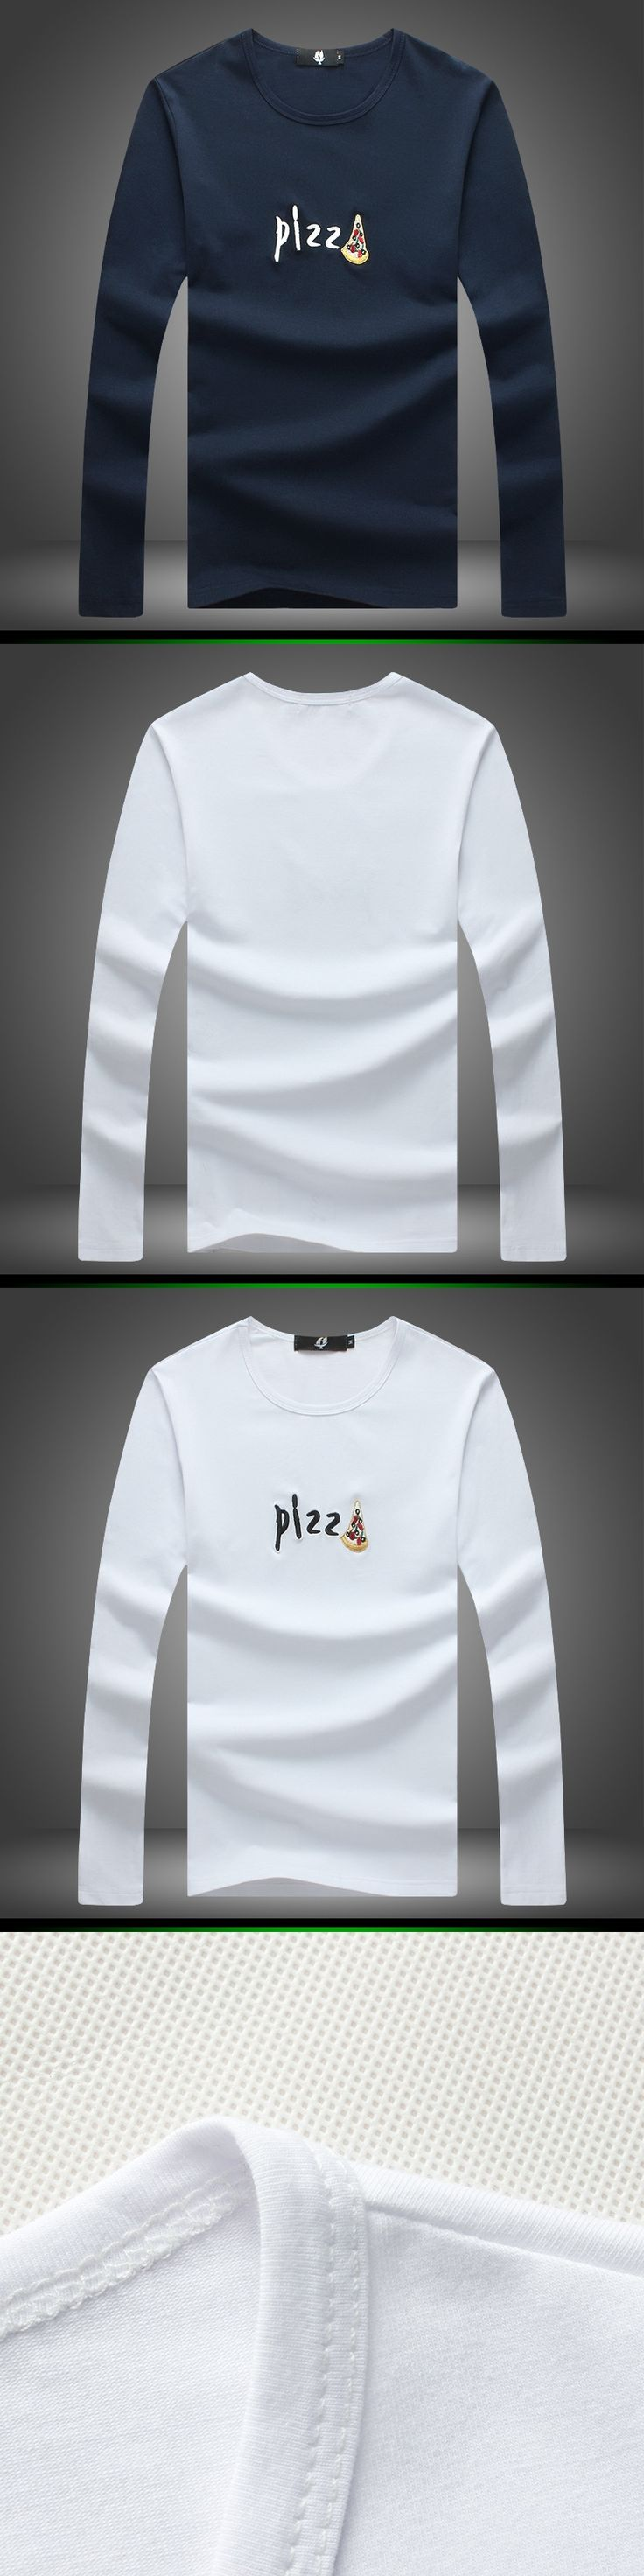 2015 Hot men tshirt Long sleeve tops casual t shirt Embroidery simple design solid color t-shirts men's clothing M-5XL